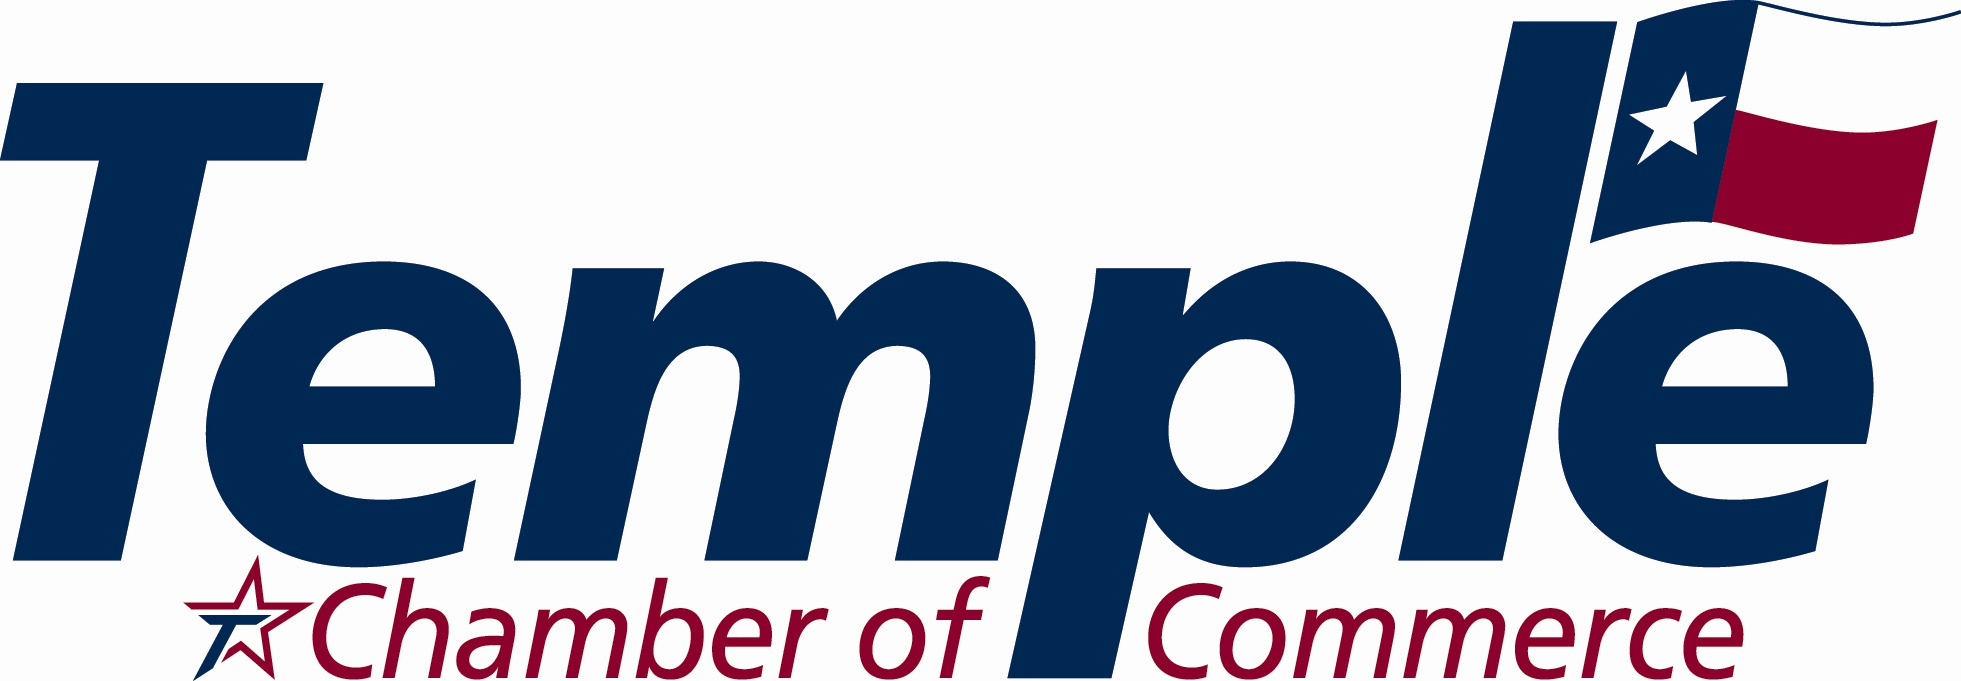 Temple Chamber of Commerce logo